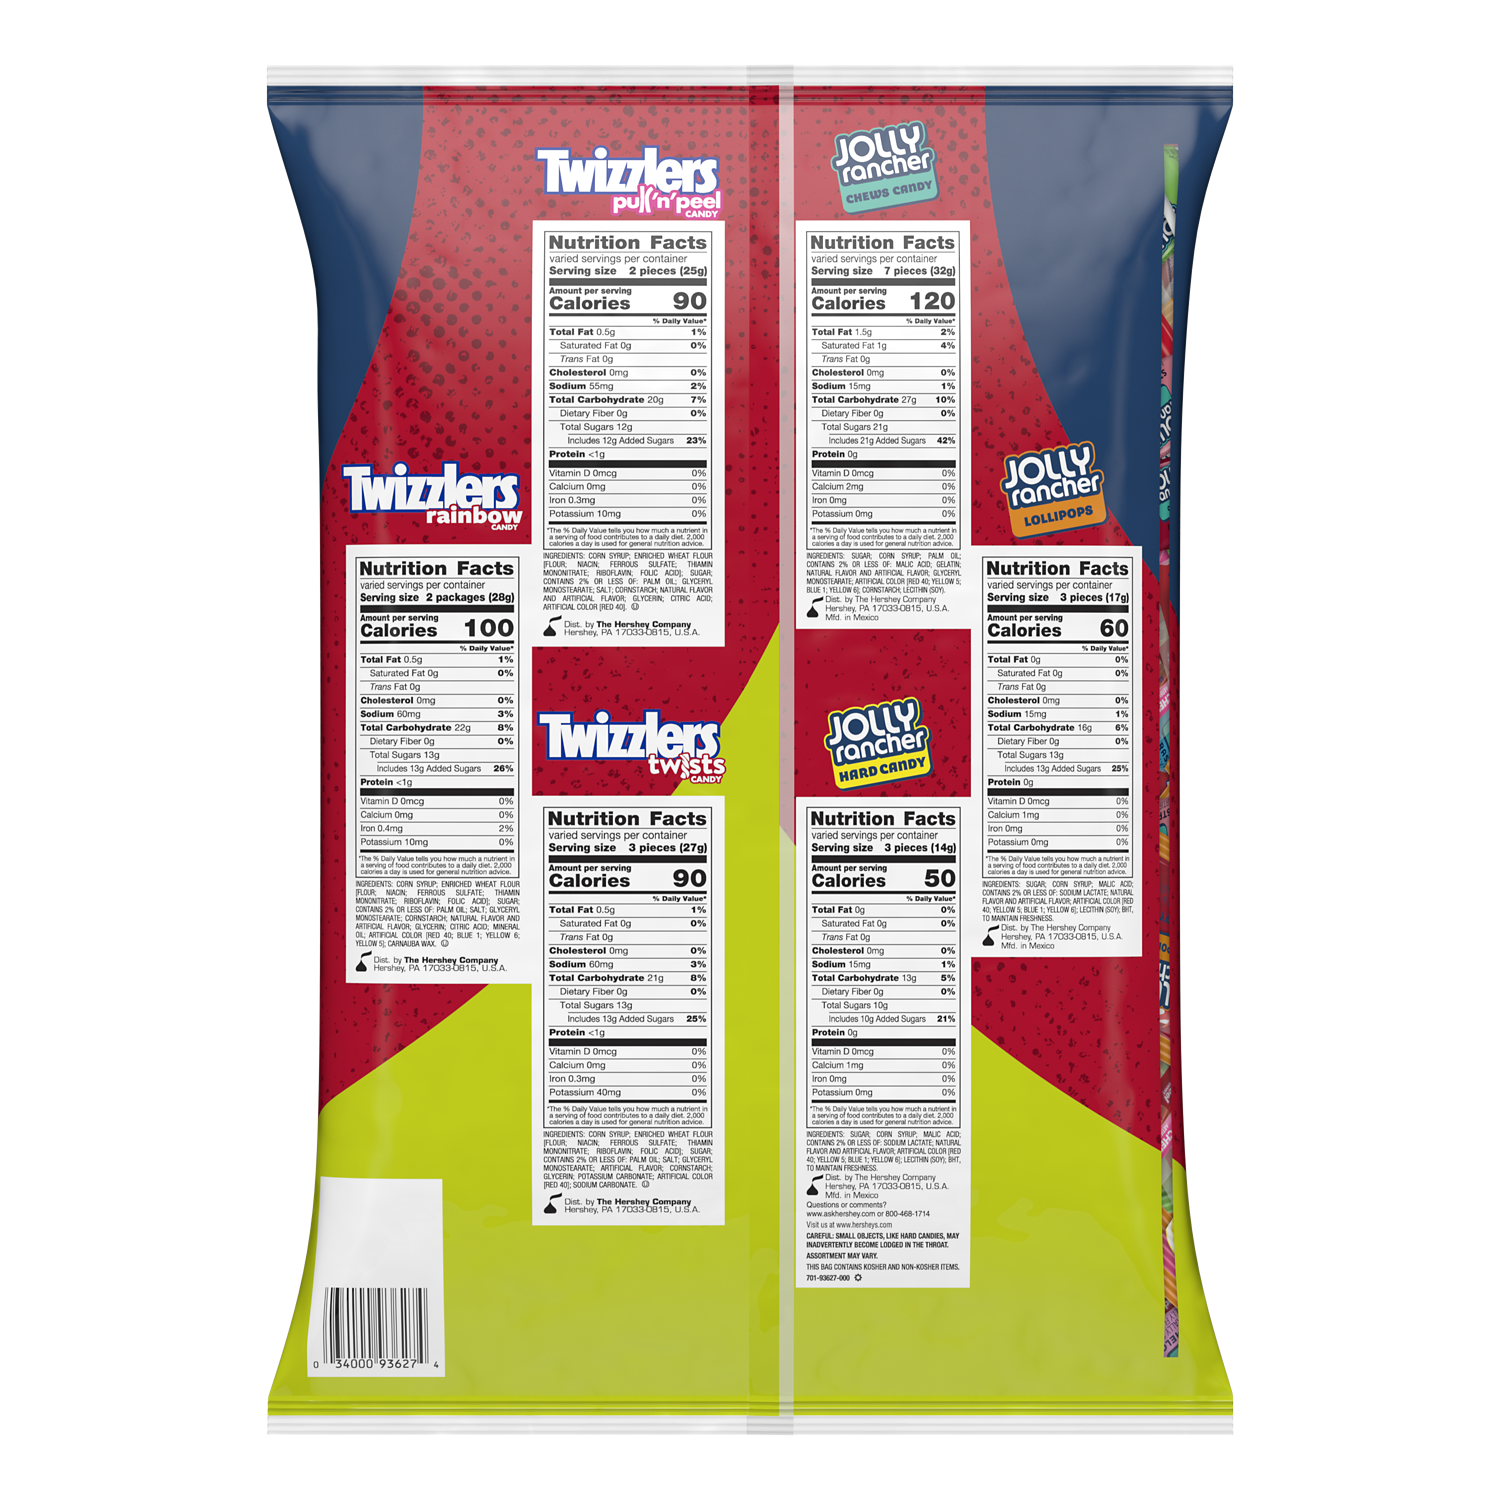 JOLLY RANCHER TWIZZLERS Candy Assortment, 68.83 oz bag, 235 pieces - Back of Package